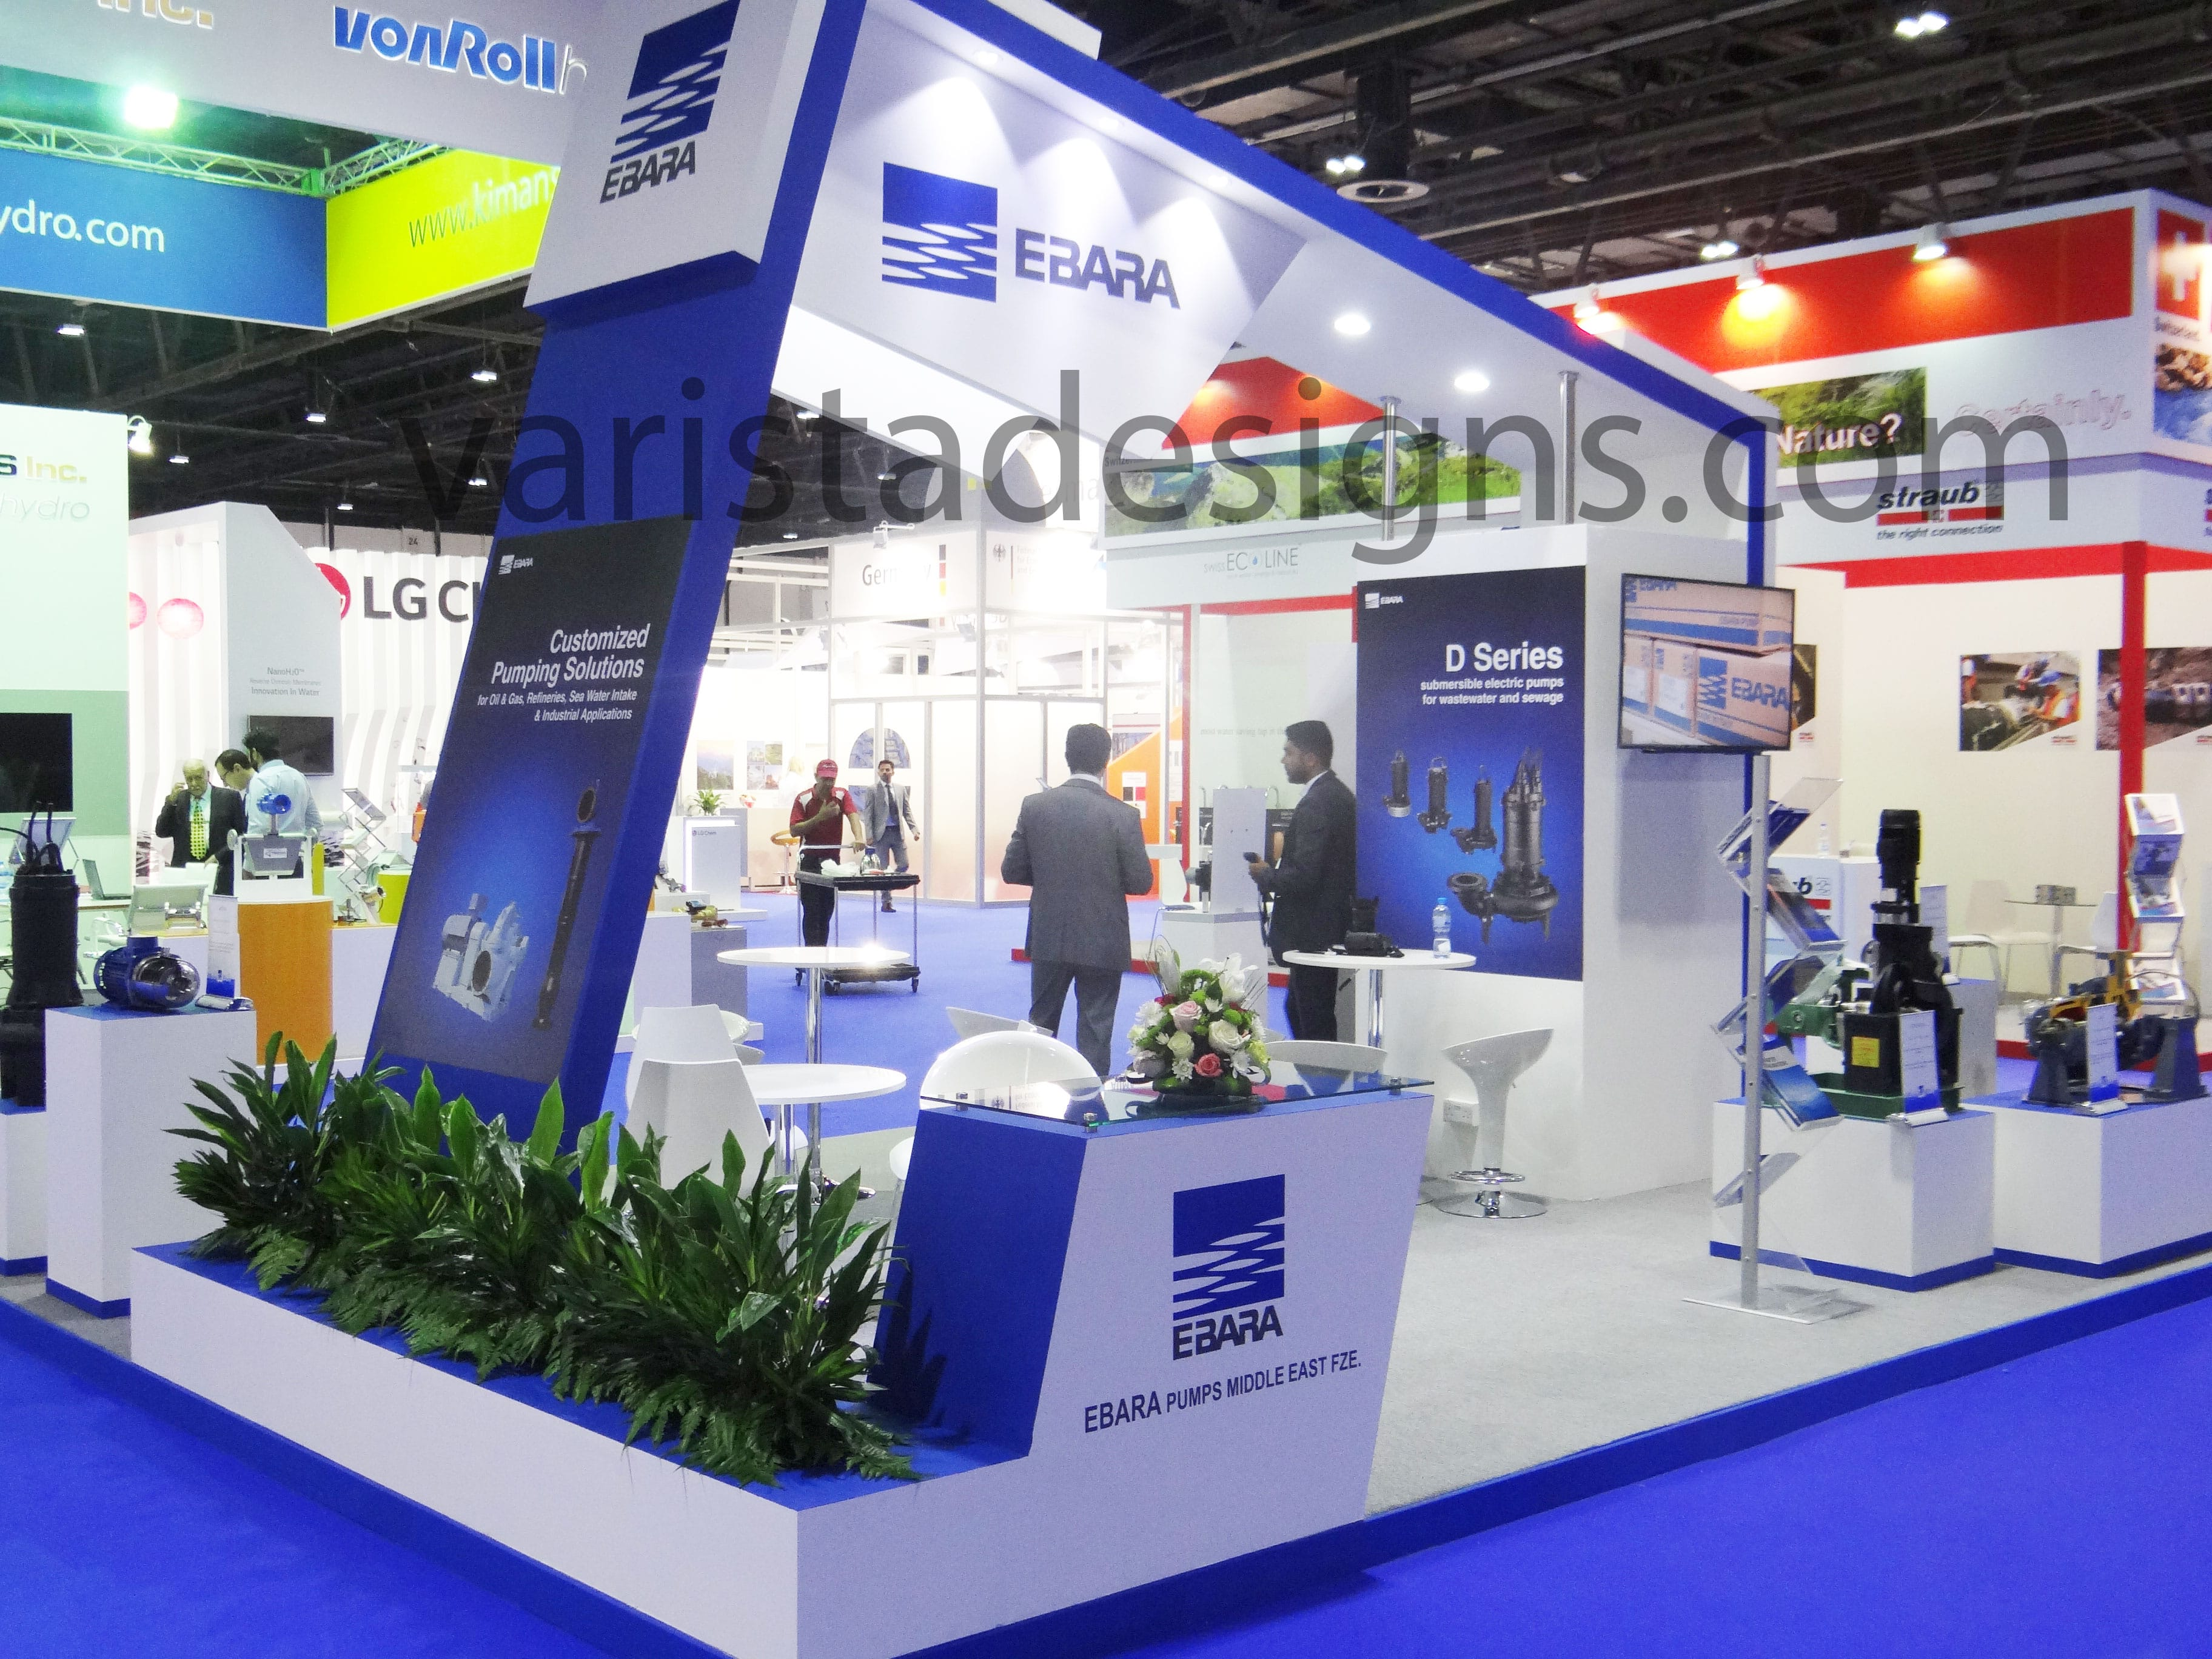 Exhibition Stand Builders In Sharjah : Exhibition stand buildup for ebara at wetex